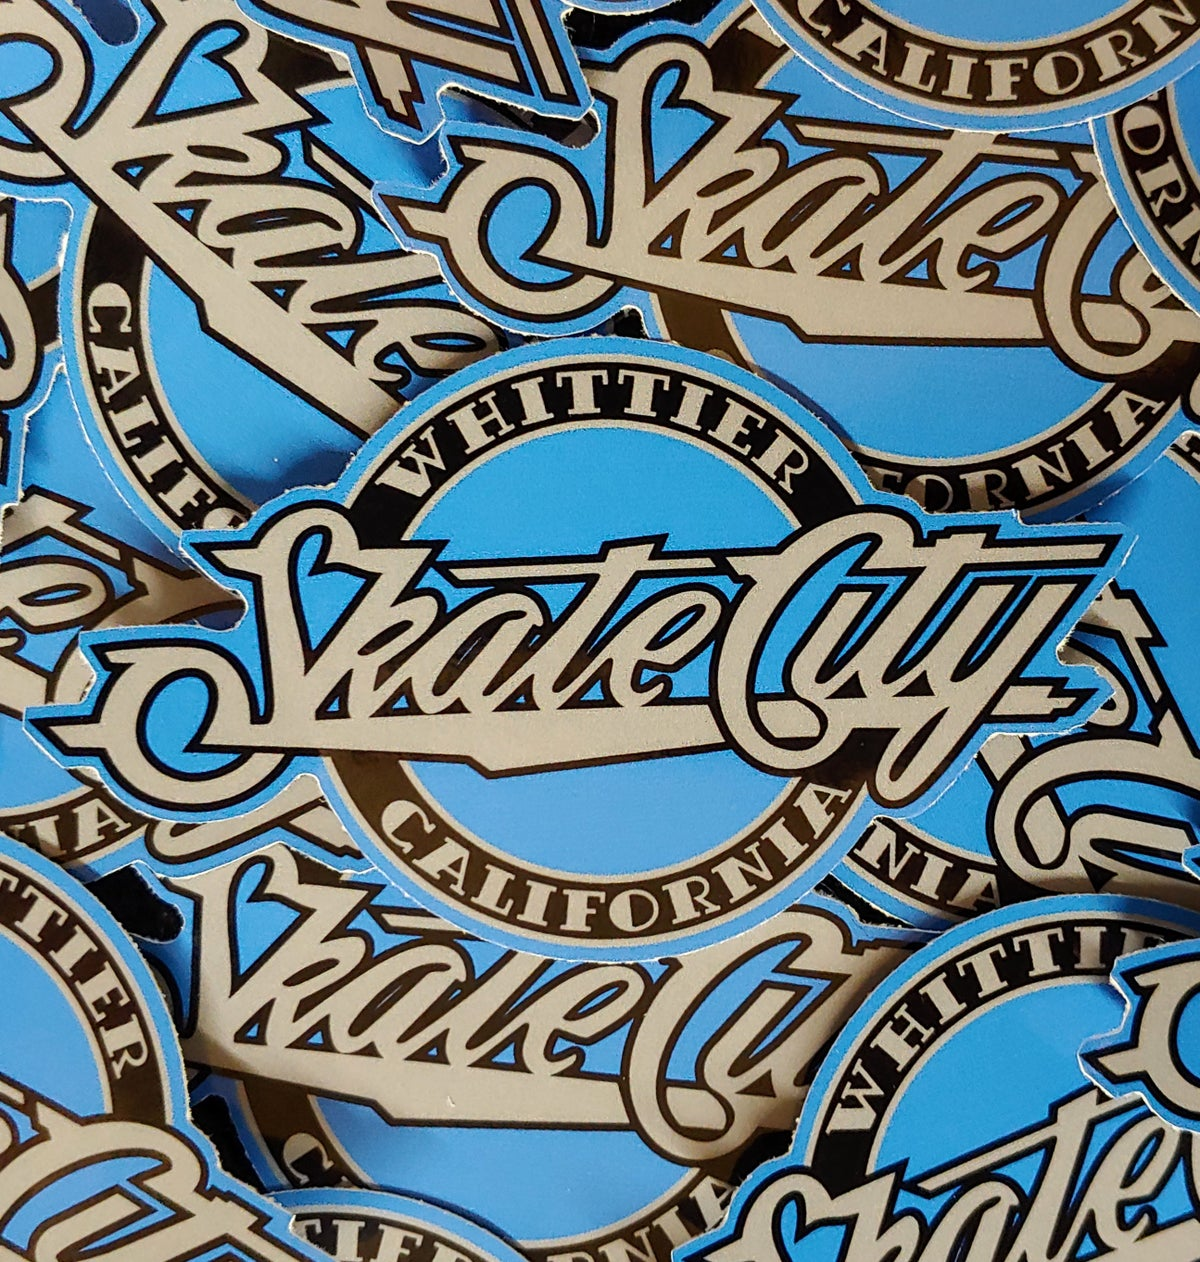 Whittier Skate City stickers